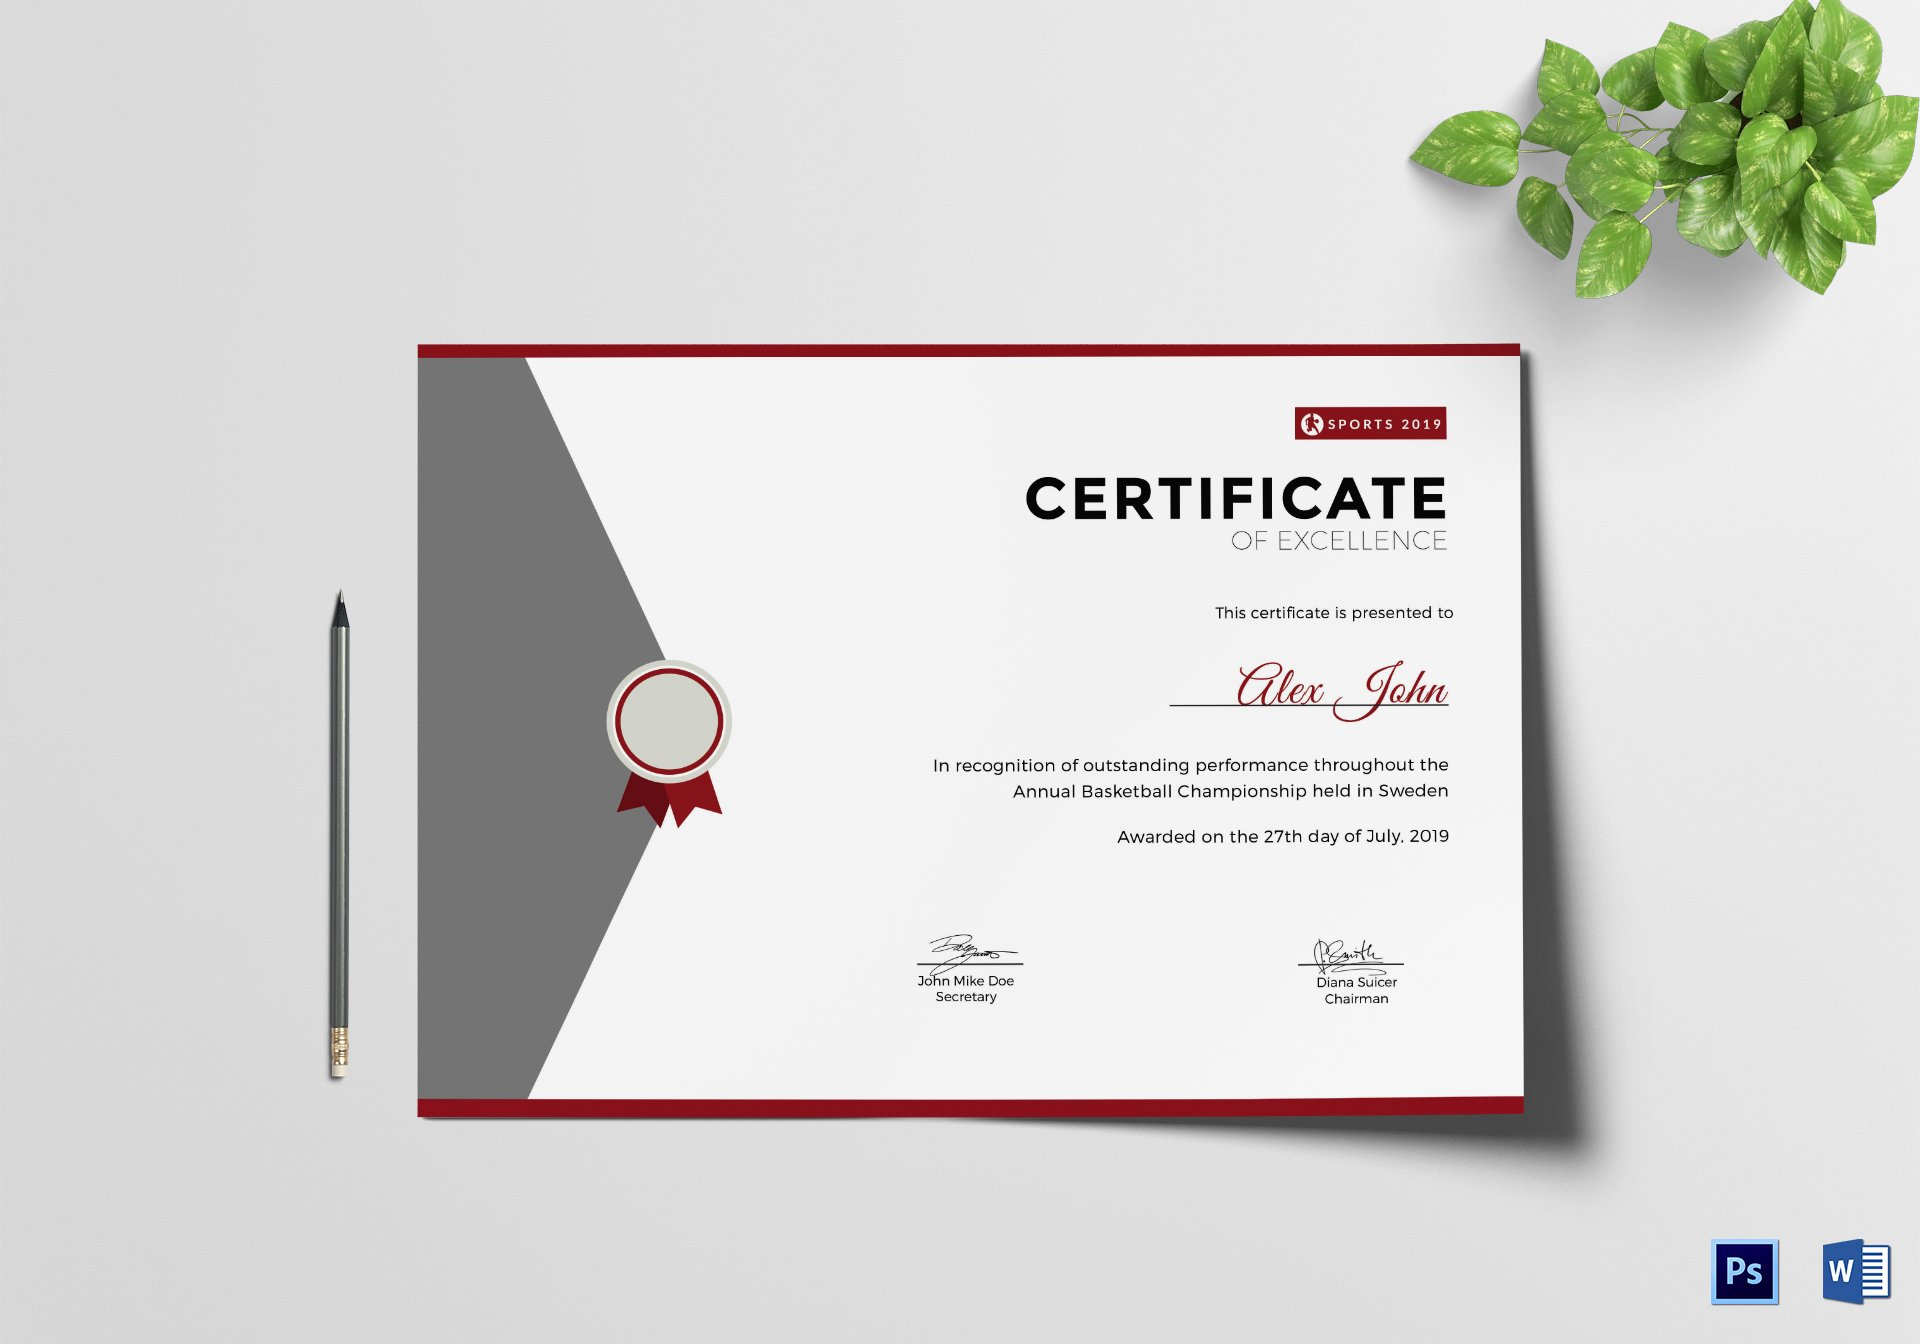 Certificate Of Excellence Template New Prize Excellence Certificate Design Template In Psd Word